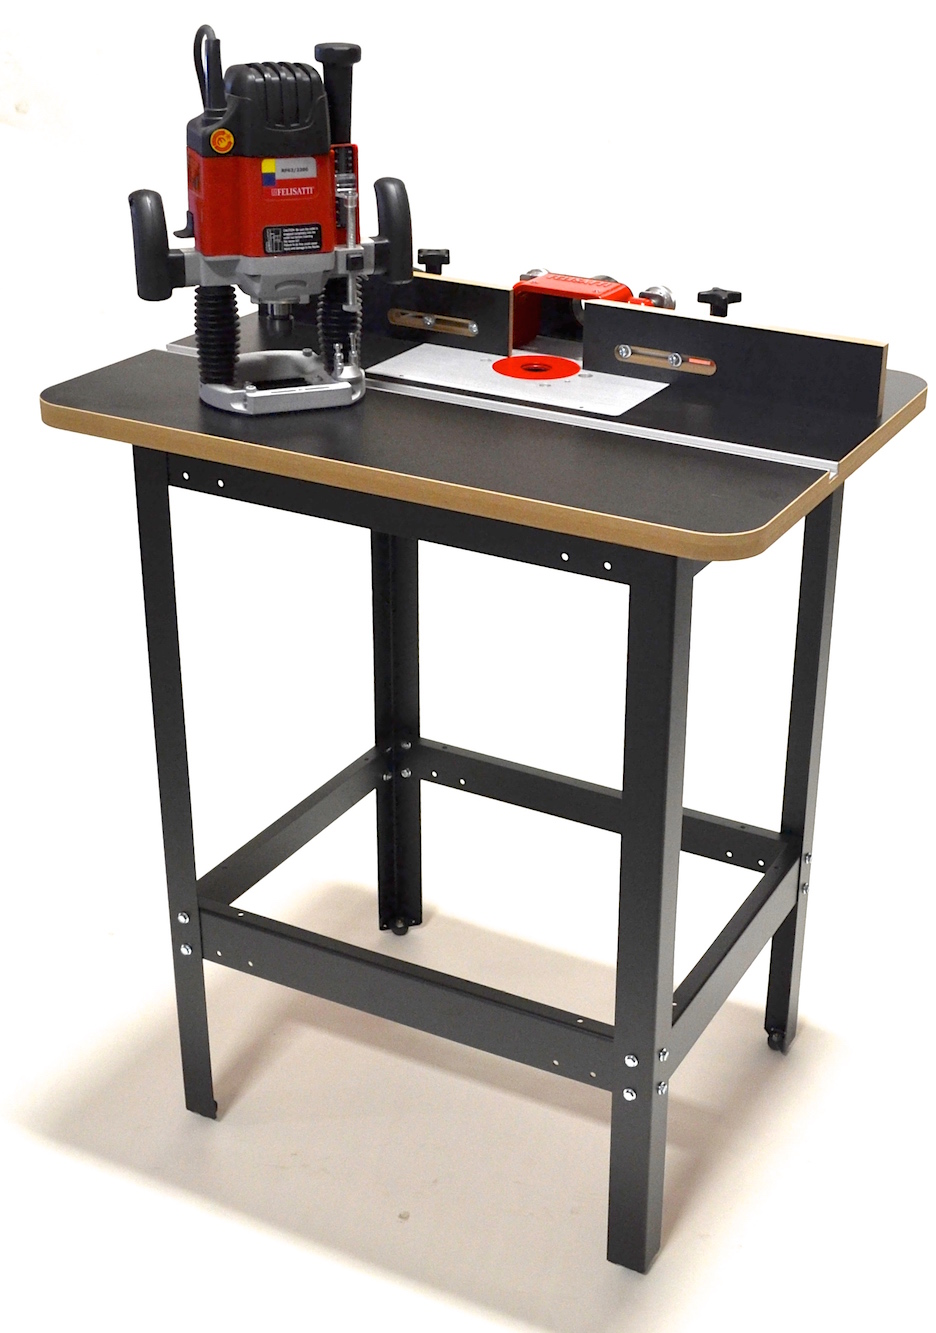 Ensemble de Table Felisatti avec Toupie RF62/2200